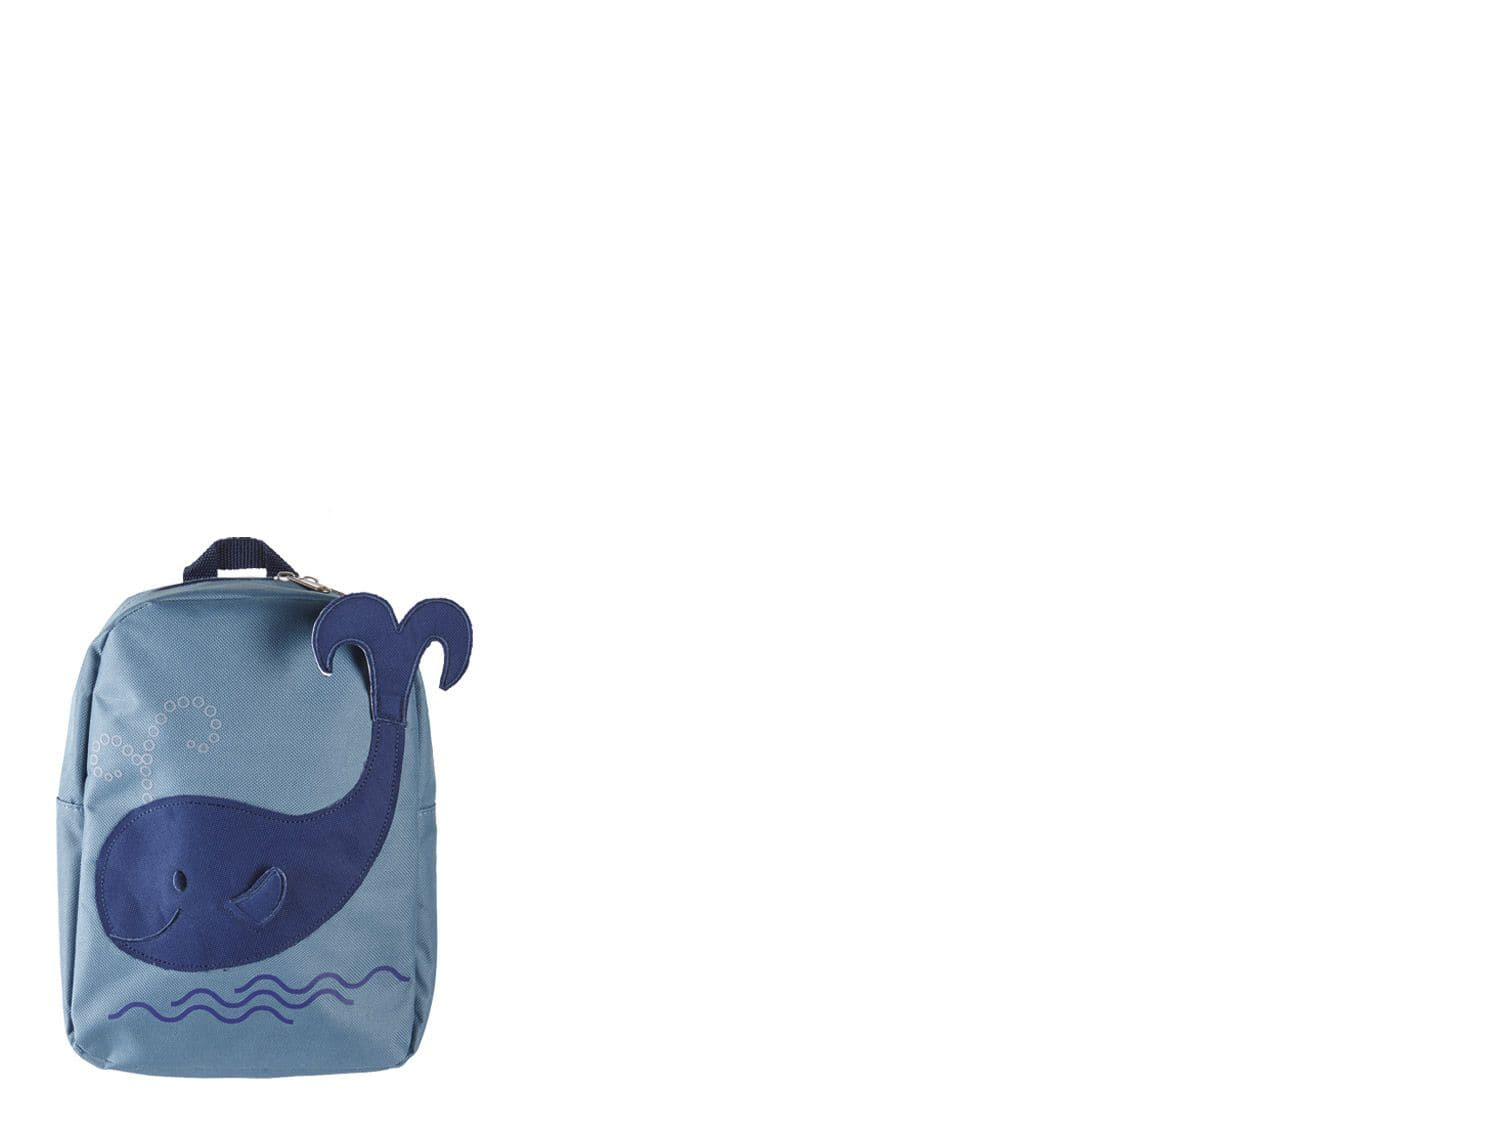 Lupilu Kids Whale Rucksack/School Bag - Stockpoint Apparel Outlet